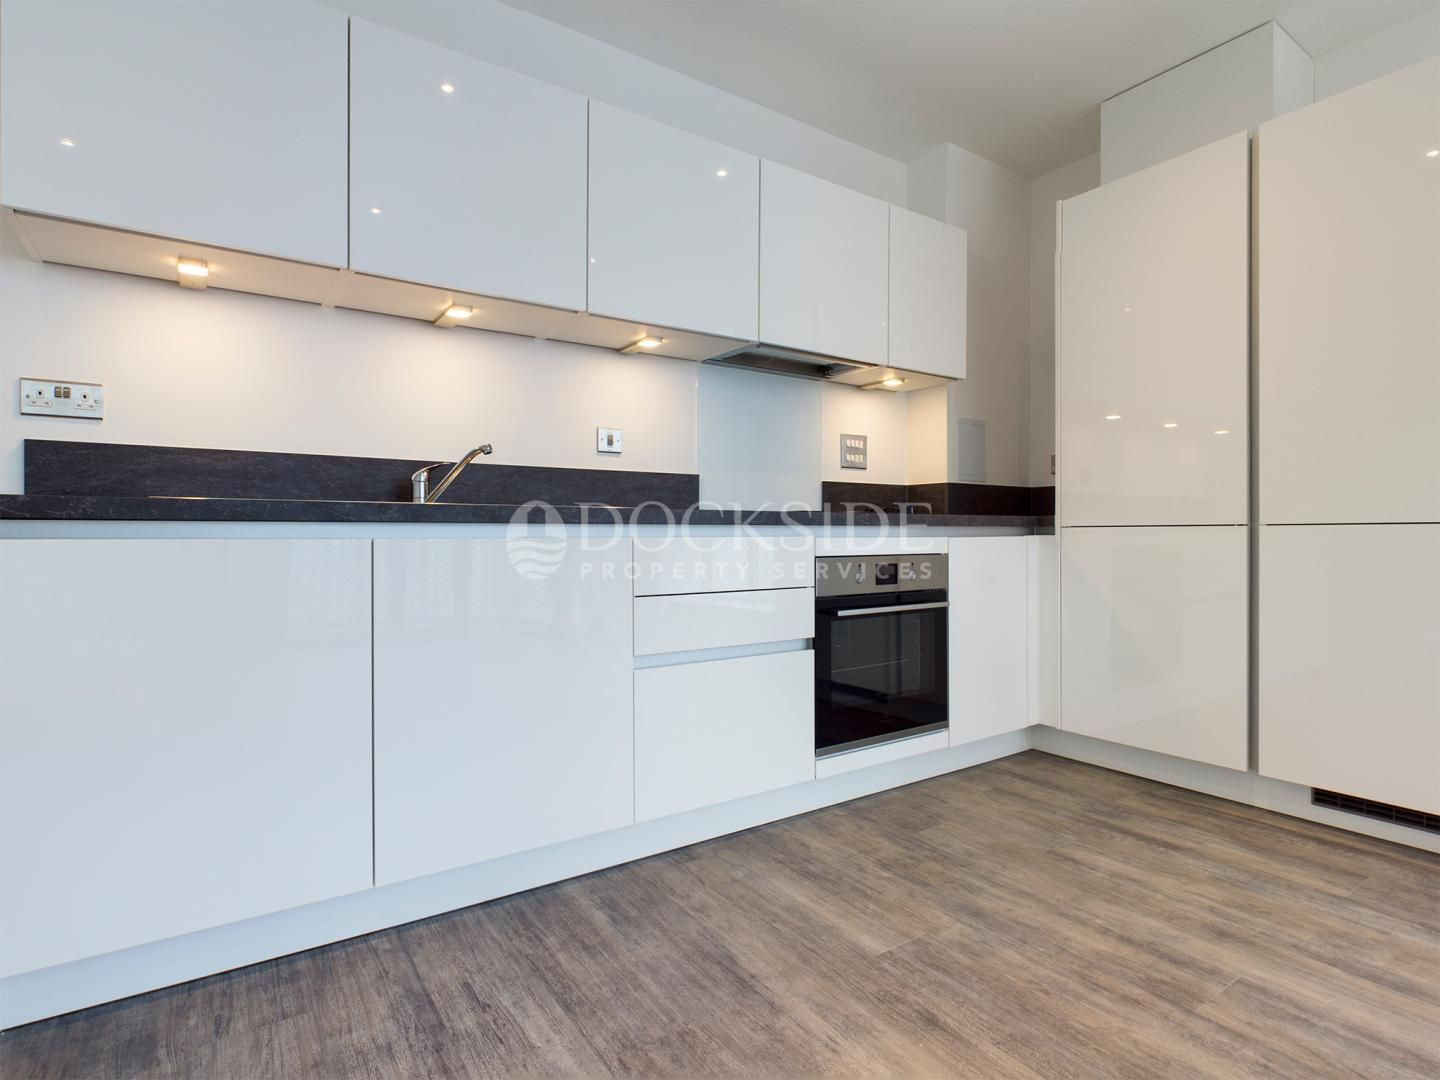 2 bed flat to rent in Corys Road, ME1